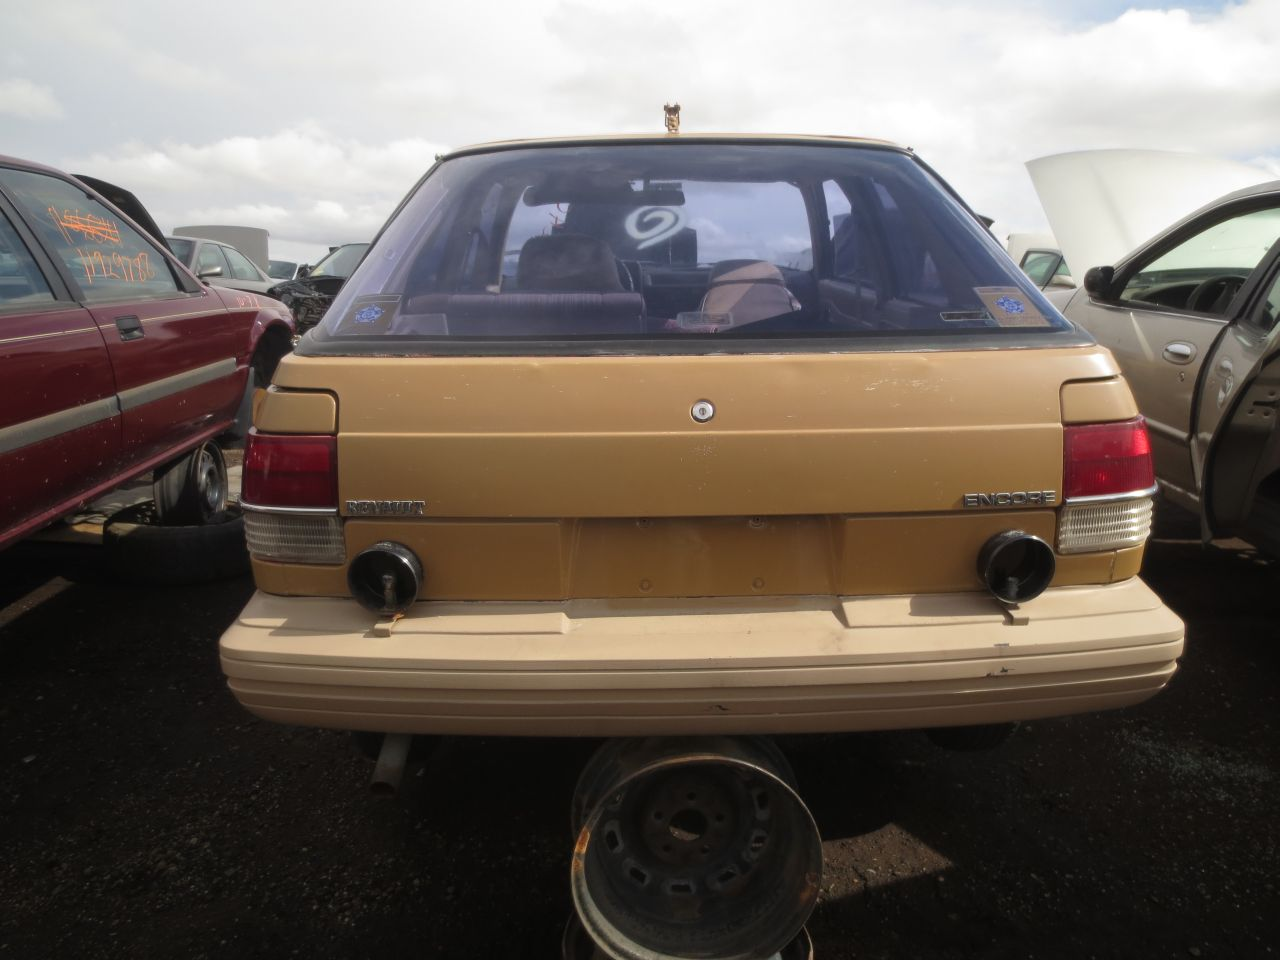 15  1985 Renault Encore Down On The Junkyard  Picture Courtesy Of Murilee  Martin